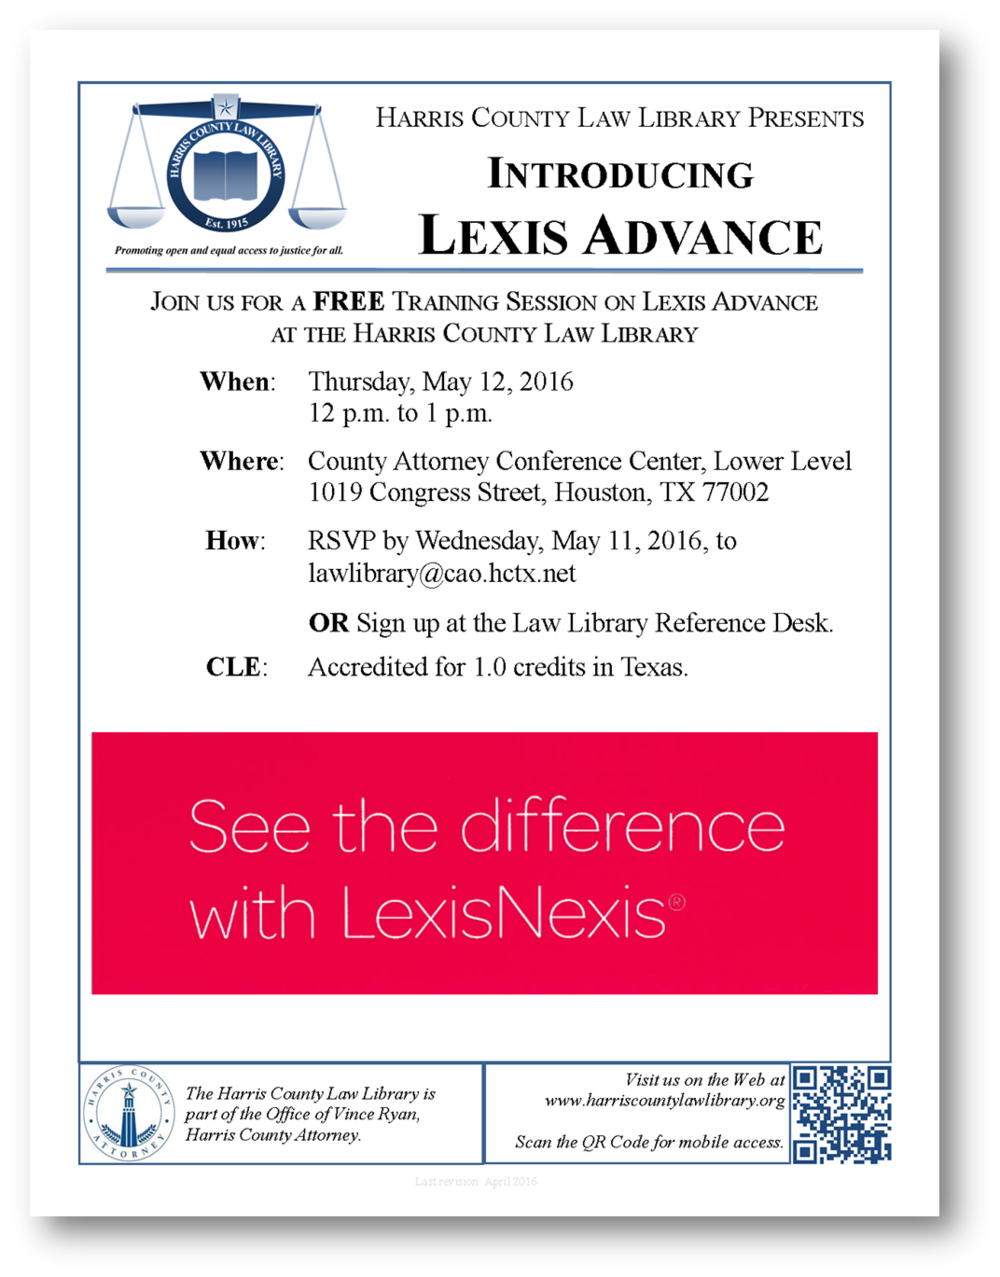 Click for flyer about Lexis Advance training session at Harris County Law Library on May 12